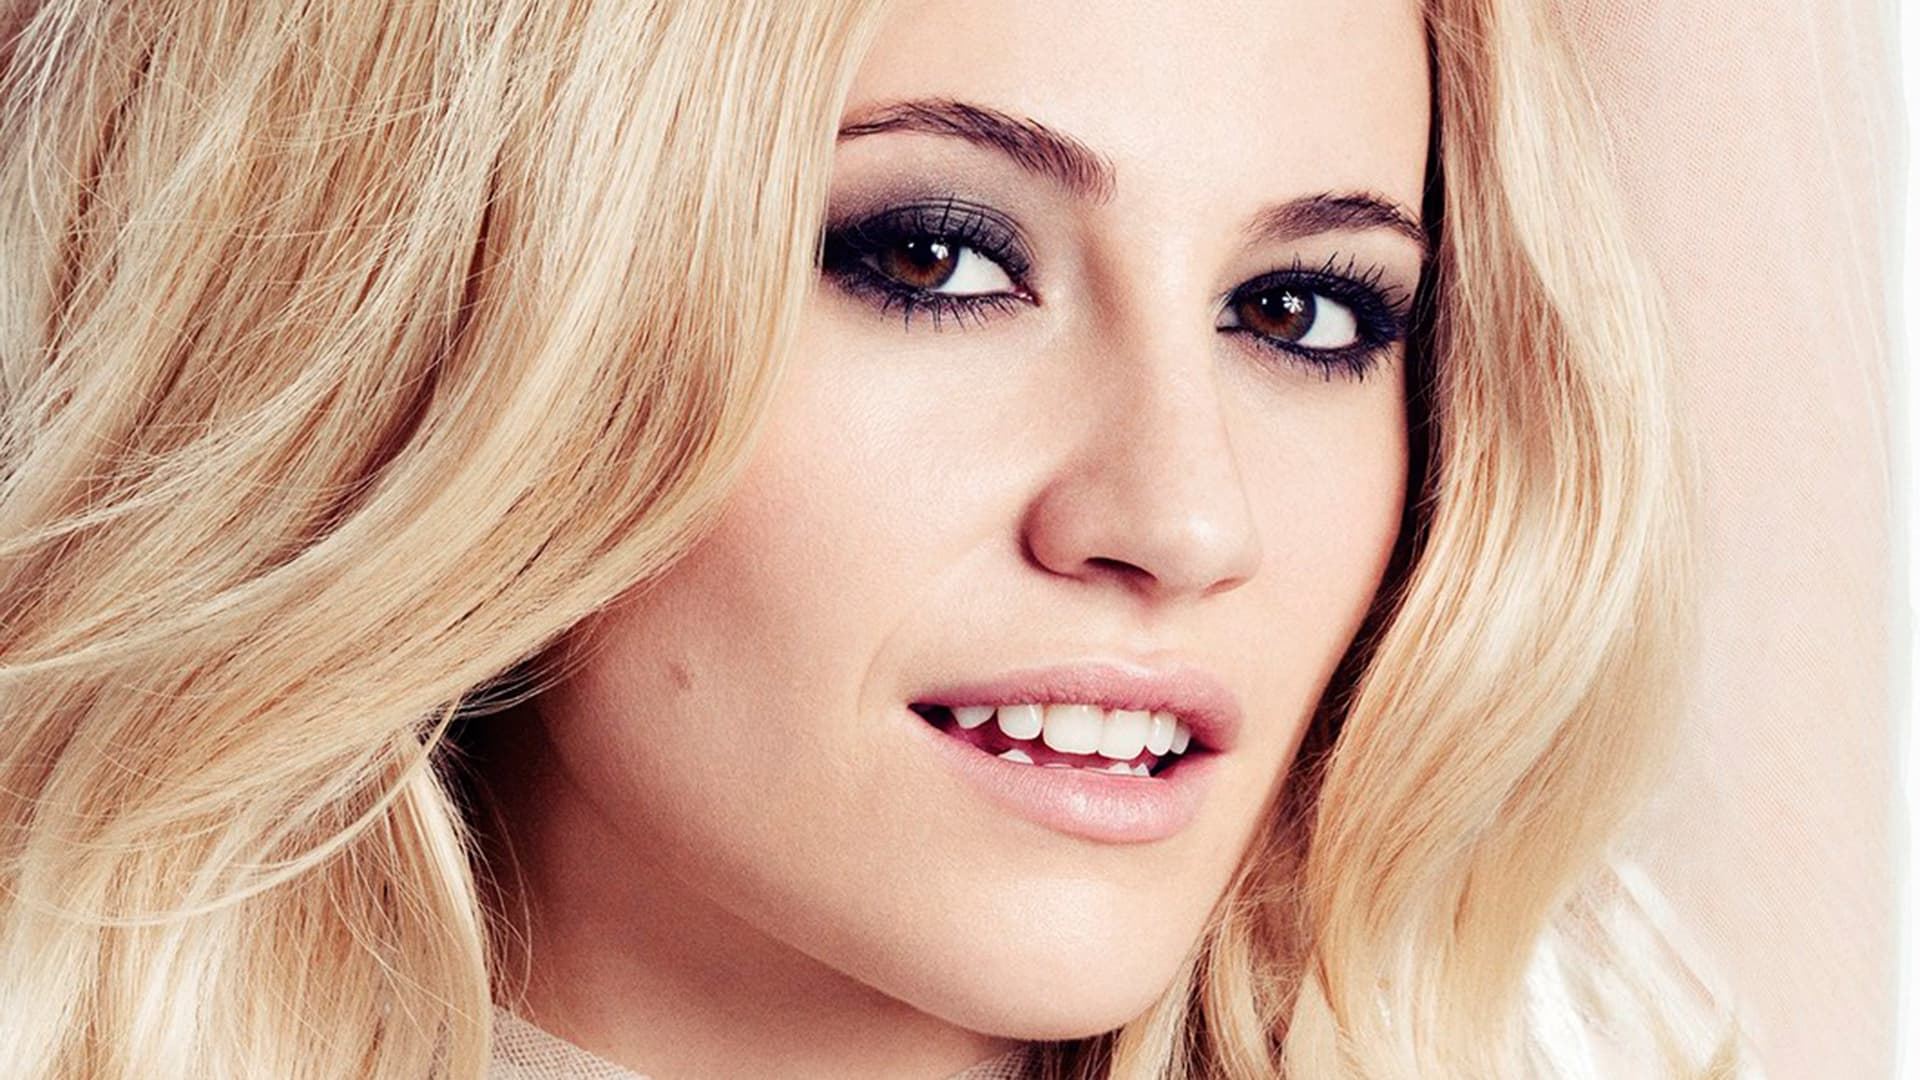 contact pixie lott wallpapers hd high quality resolution download contacter amazon pixie lott wallpapers hd high quality resolution download